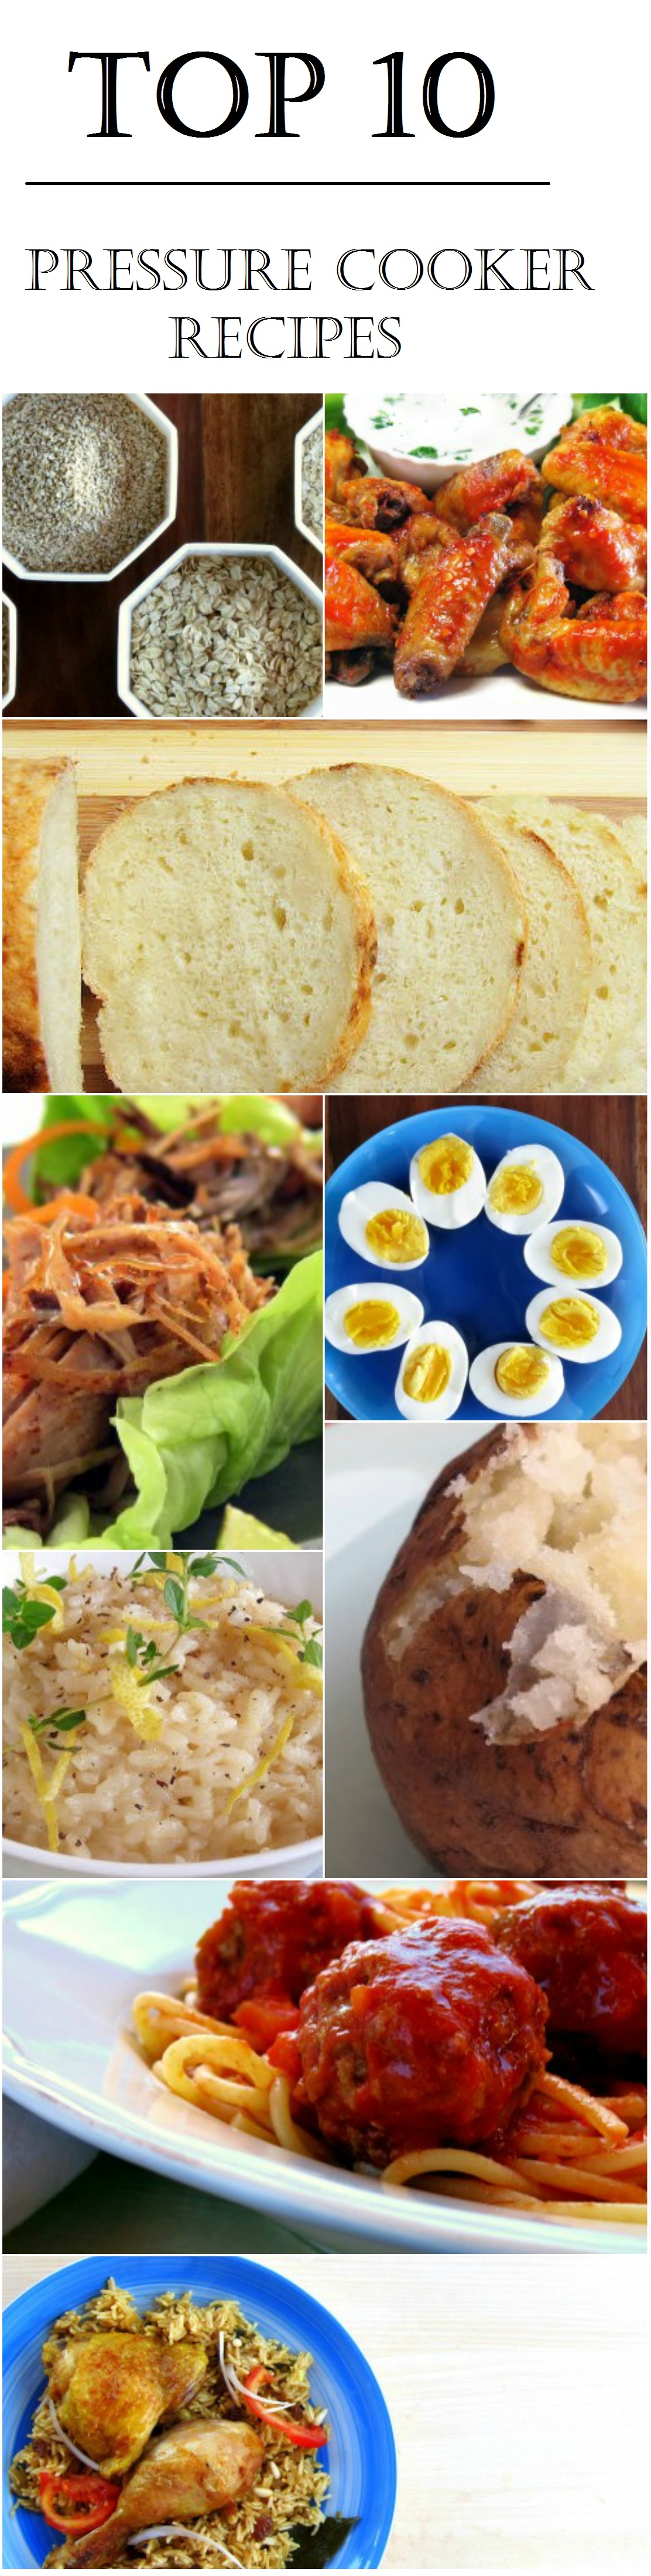 Top 10 Pressure Cooker Recipes, this year!